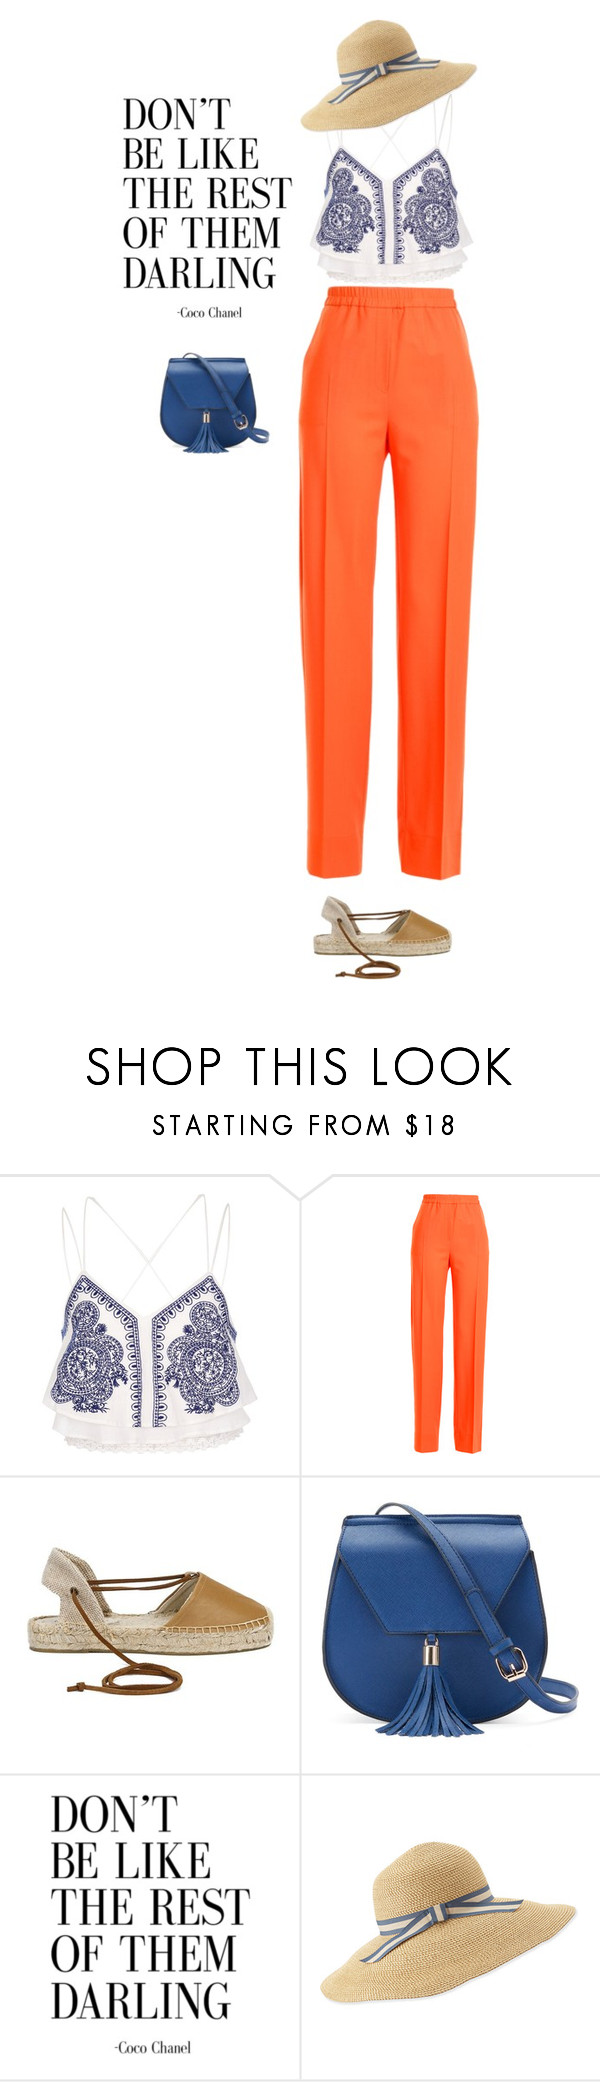 """Don't be..."" by lseed87 ❤ liked on Polyvore featuring River Island, Jil Sander, Soludos, Yoki and Eric Javits"